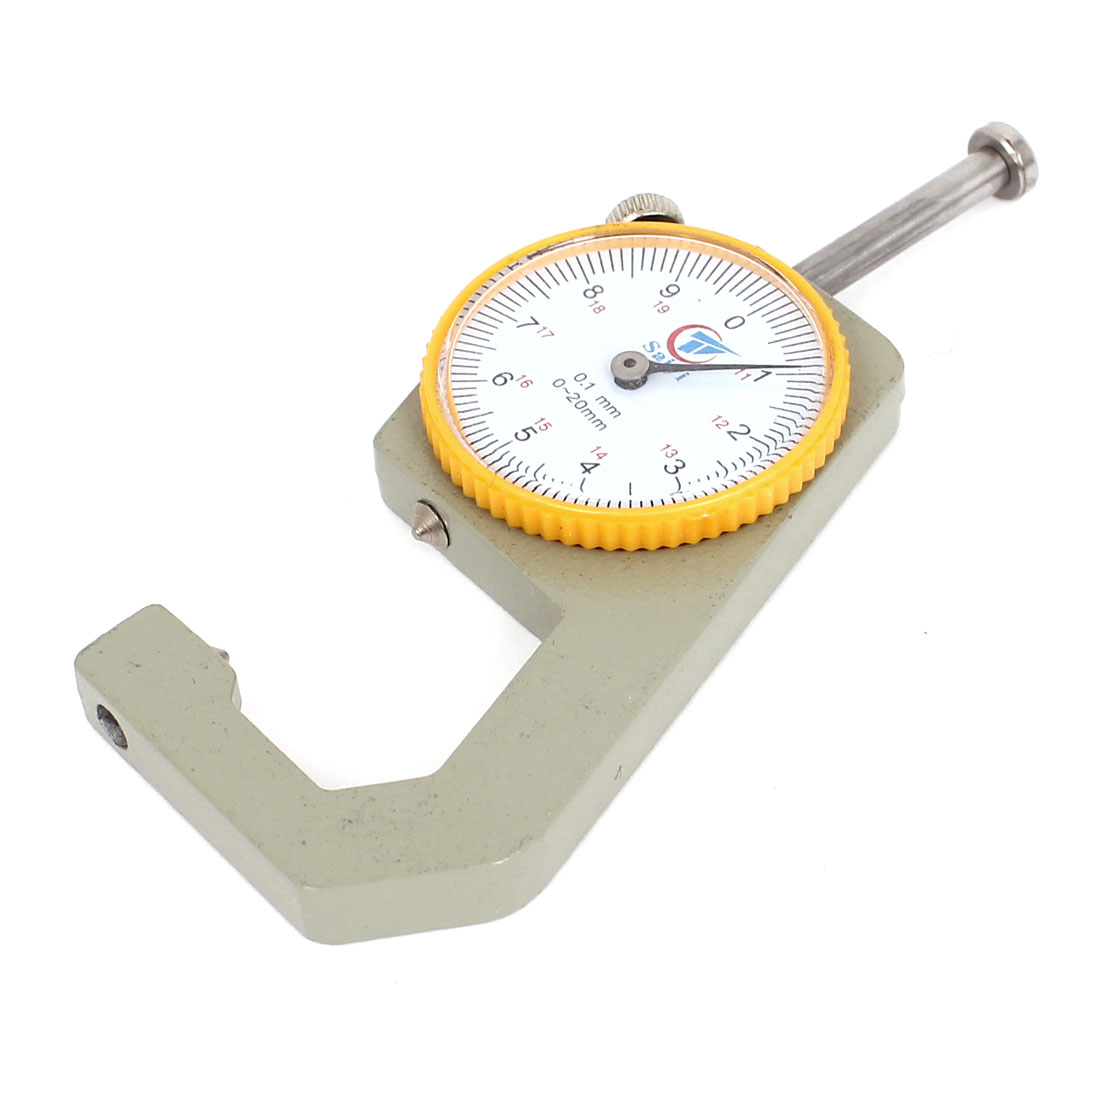 0.1mm Accuracy 0 to 20mm Roud Dial Thickness Gage Gauge Measuring Tool w Case